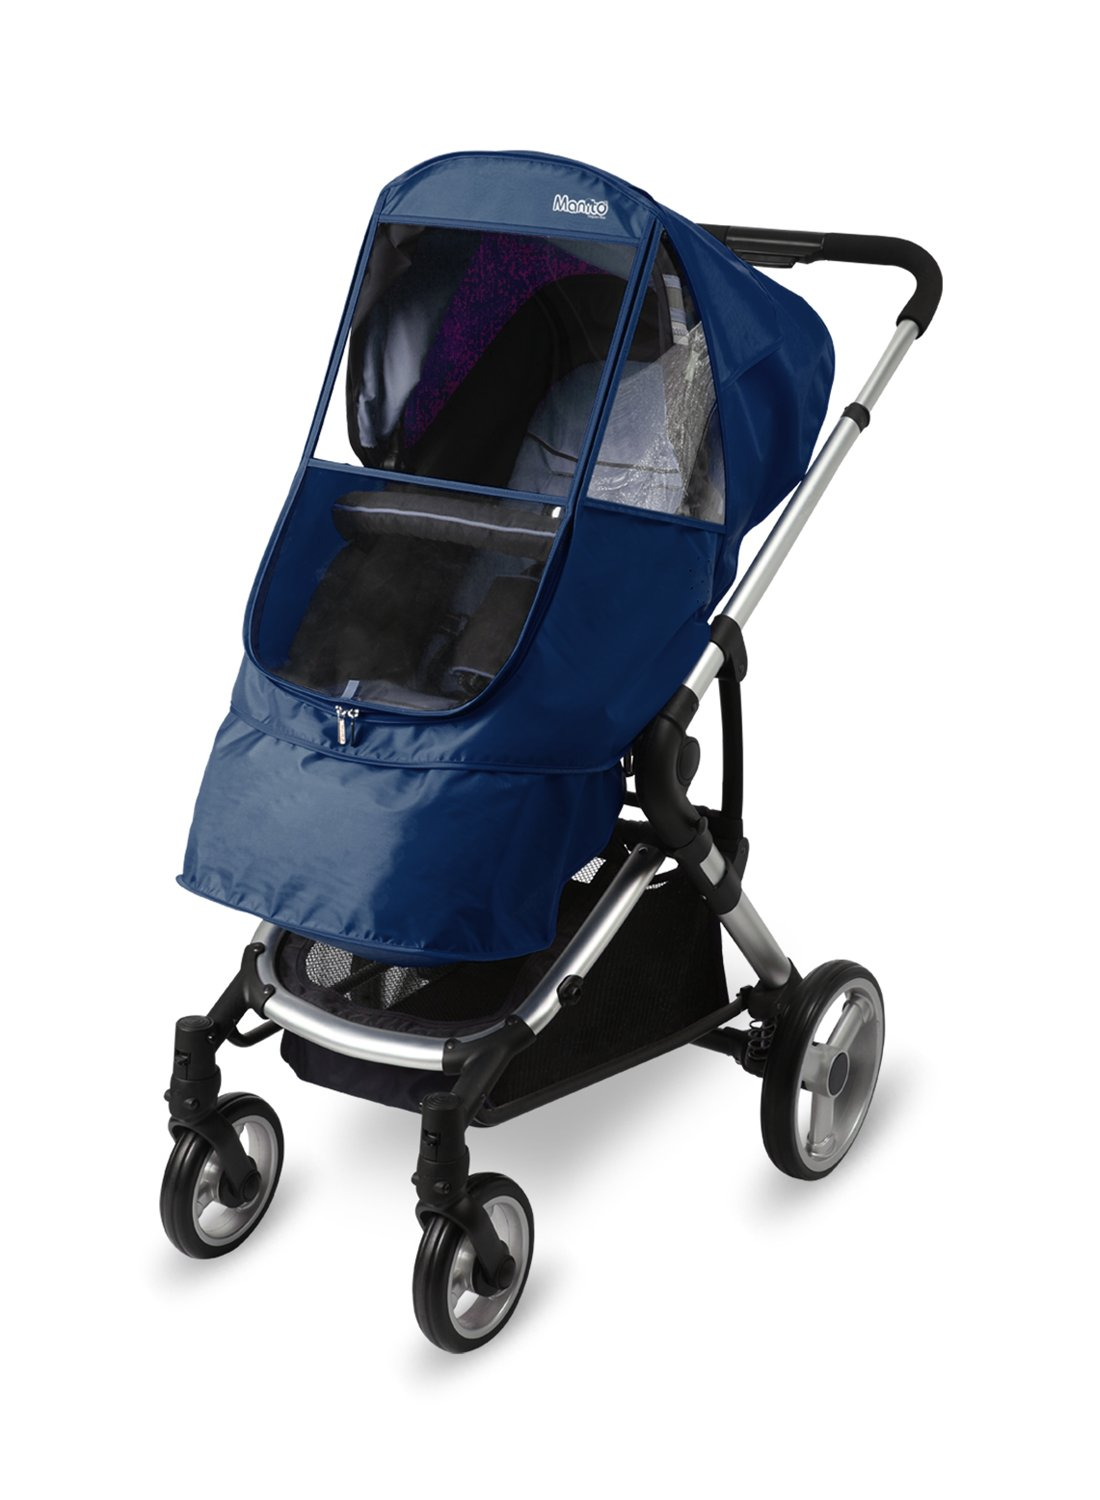 Manito Elegance Beta Stroller Weather Shield / Rain Cover - Navy